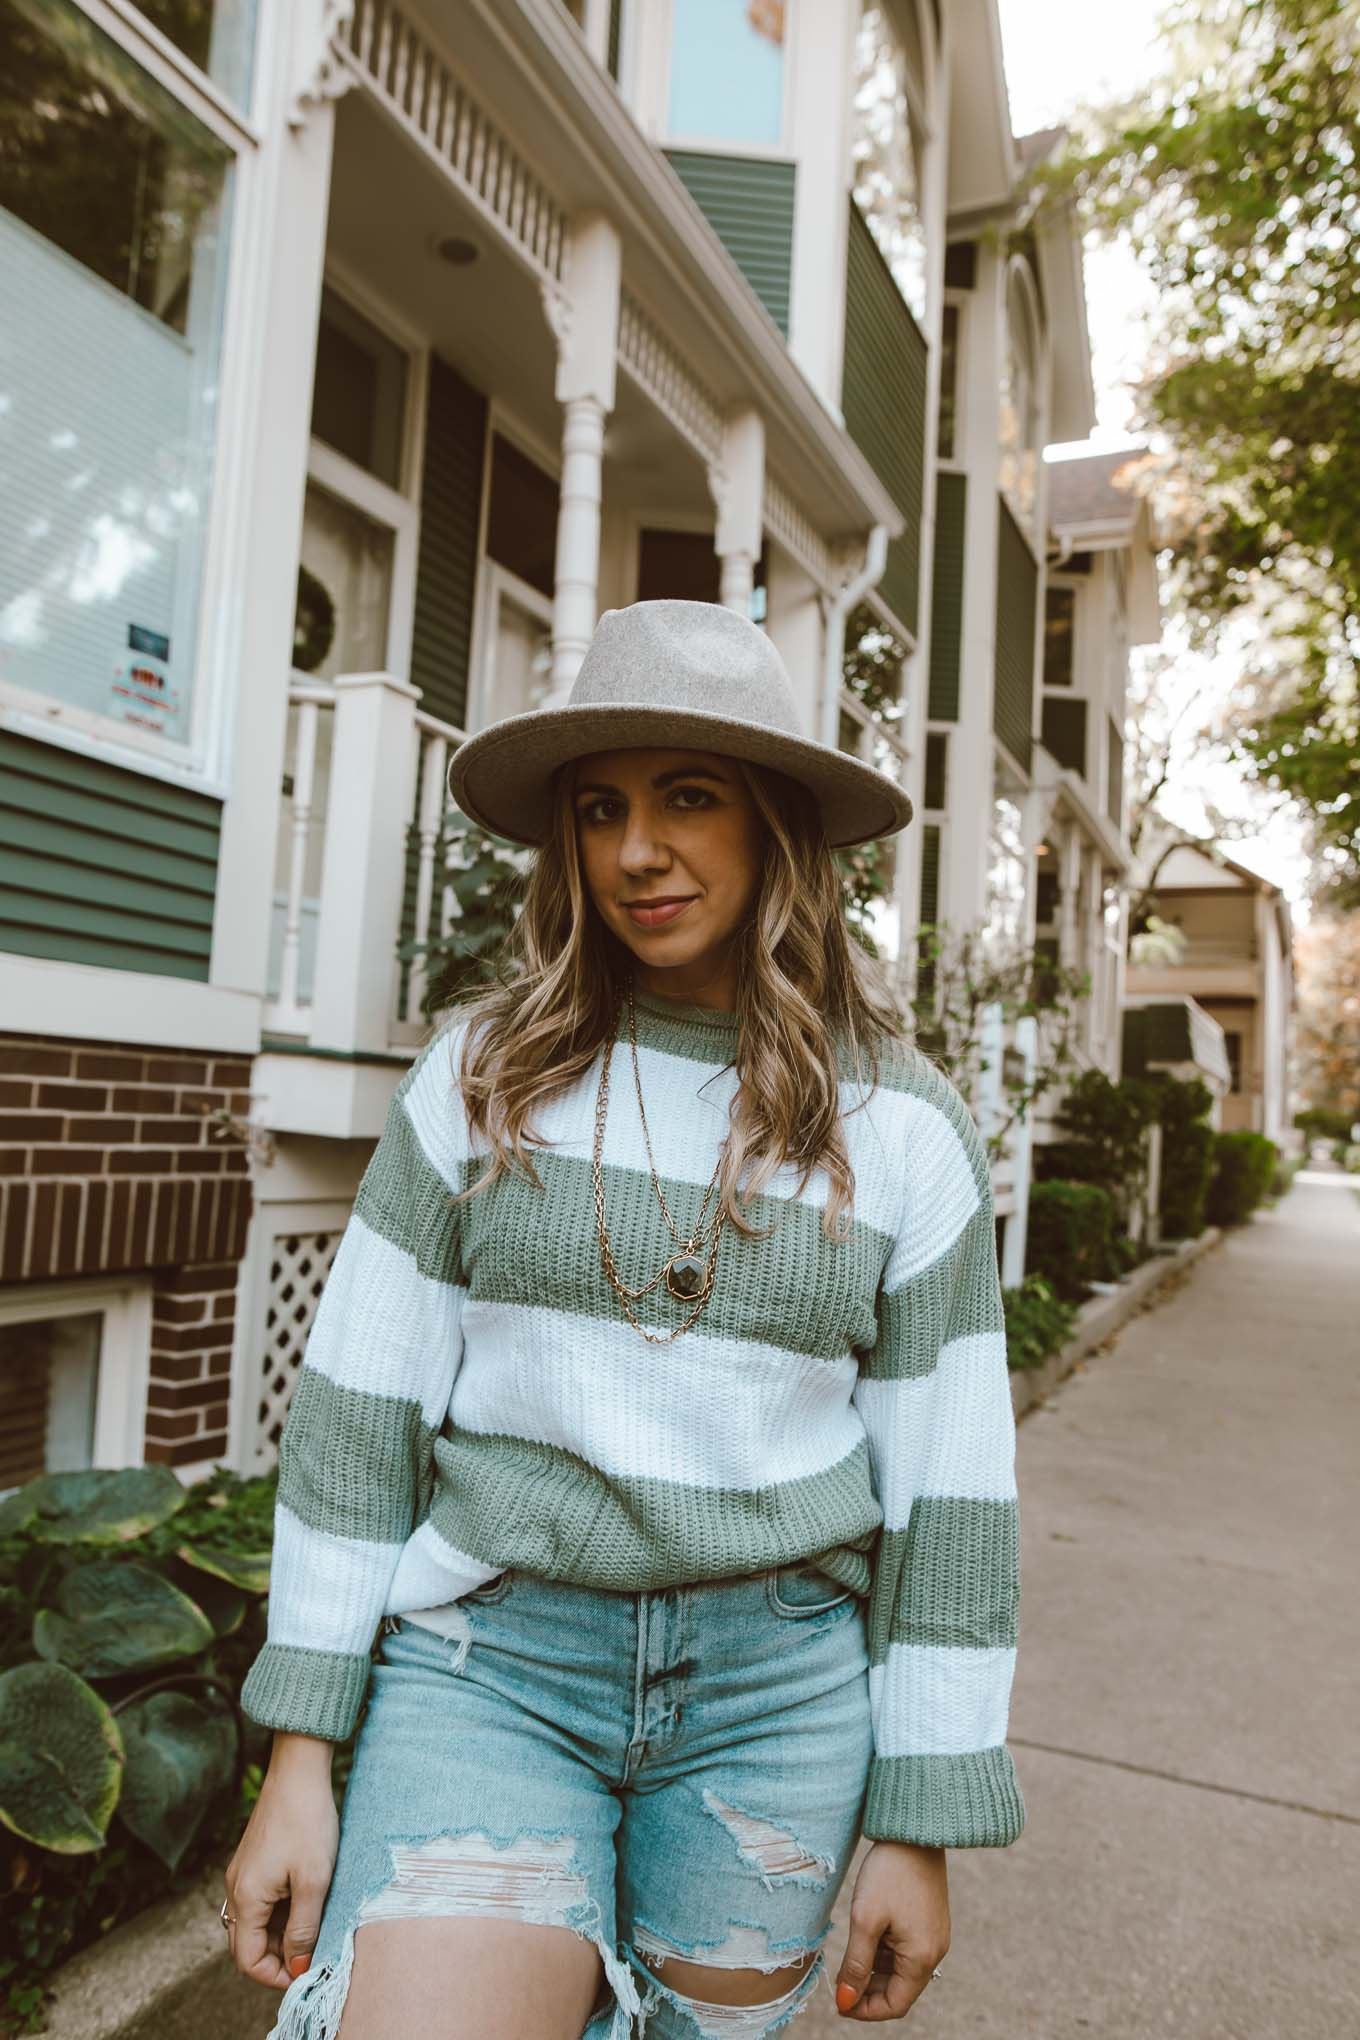 Fall Hat by popular Chicago fashion blog, Glass of Glam: image of a woman outside wearing a Amazon ZESICA Women's Long Sleeve Crew Neck Striped Color Block Comfy Loose Oversized Knitted Pullover Sweater, American Eagle Mom Jean, Nordstrom Vans sneakers, Amazon Lisianthus Women Belt Buckle Wool Wide Brim Fedora Hat, and Kendra Scott Davis Vintage Gold Multi Strand Necklace In Golden Obsidian.